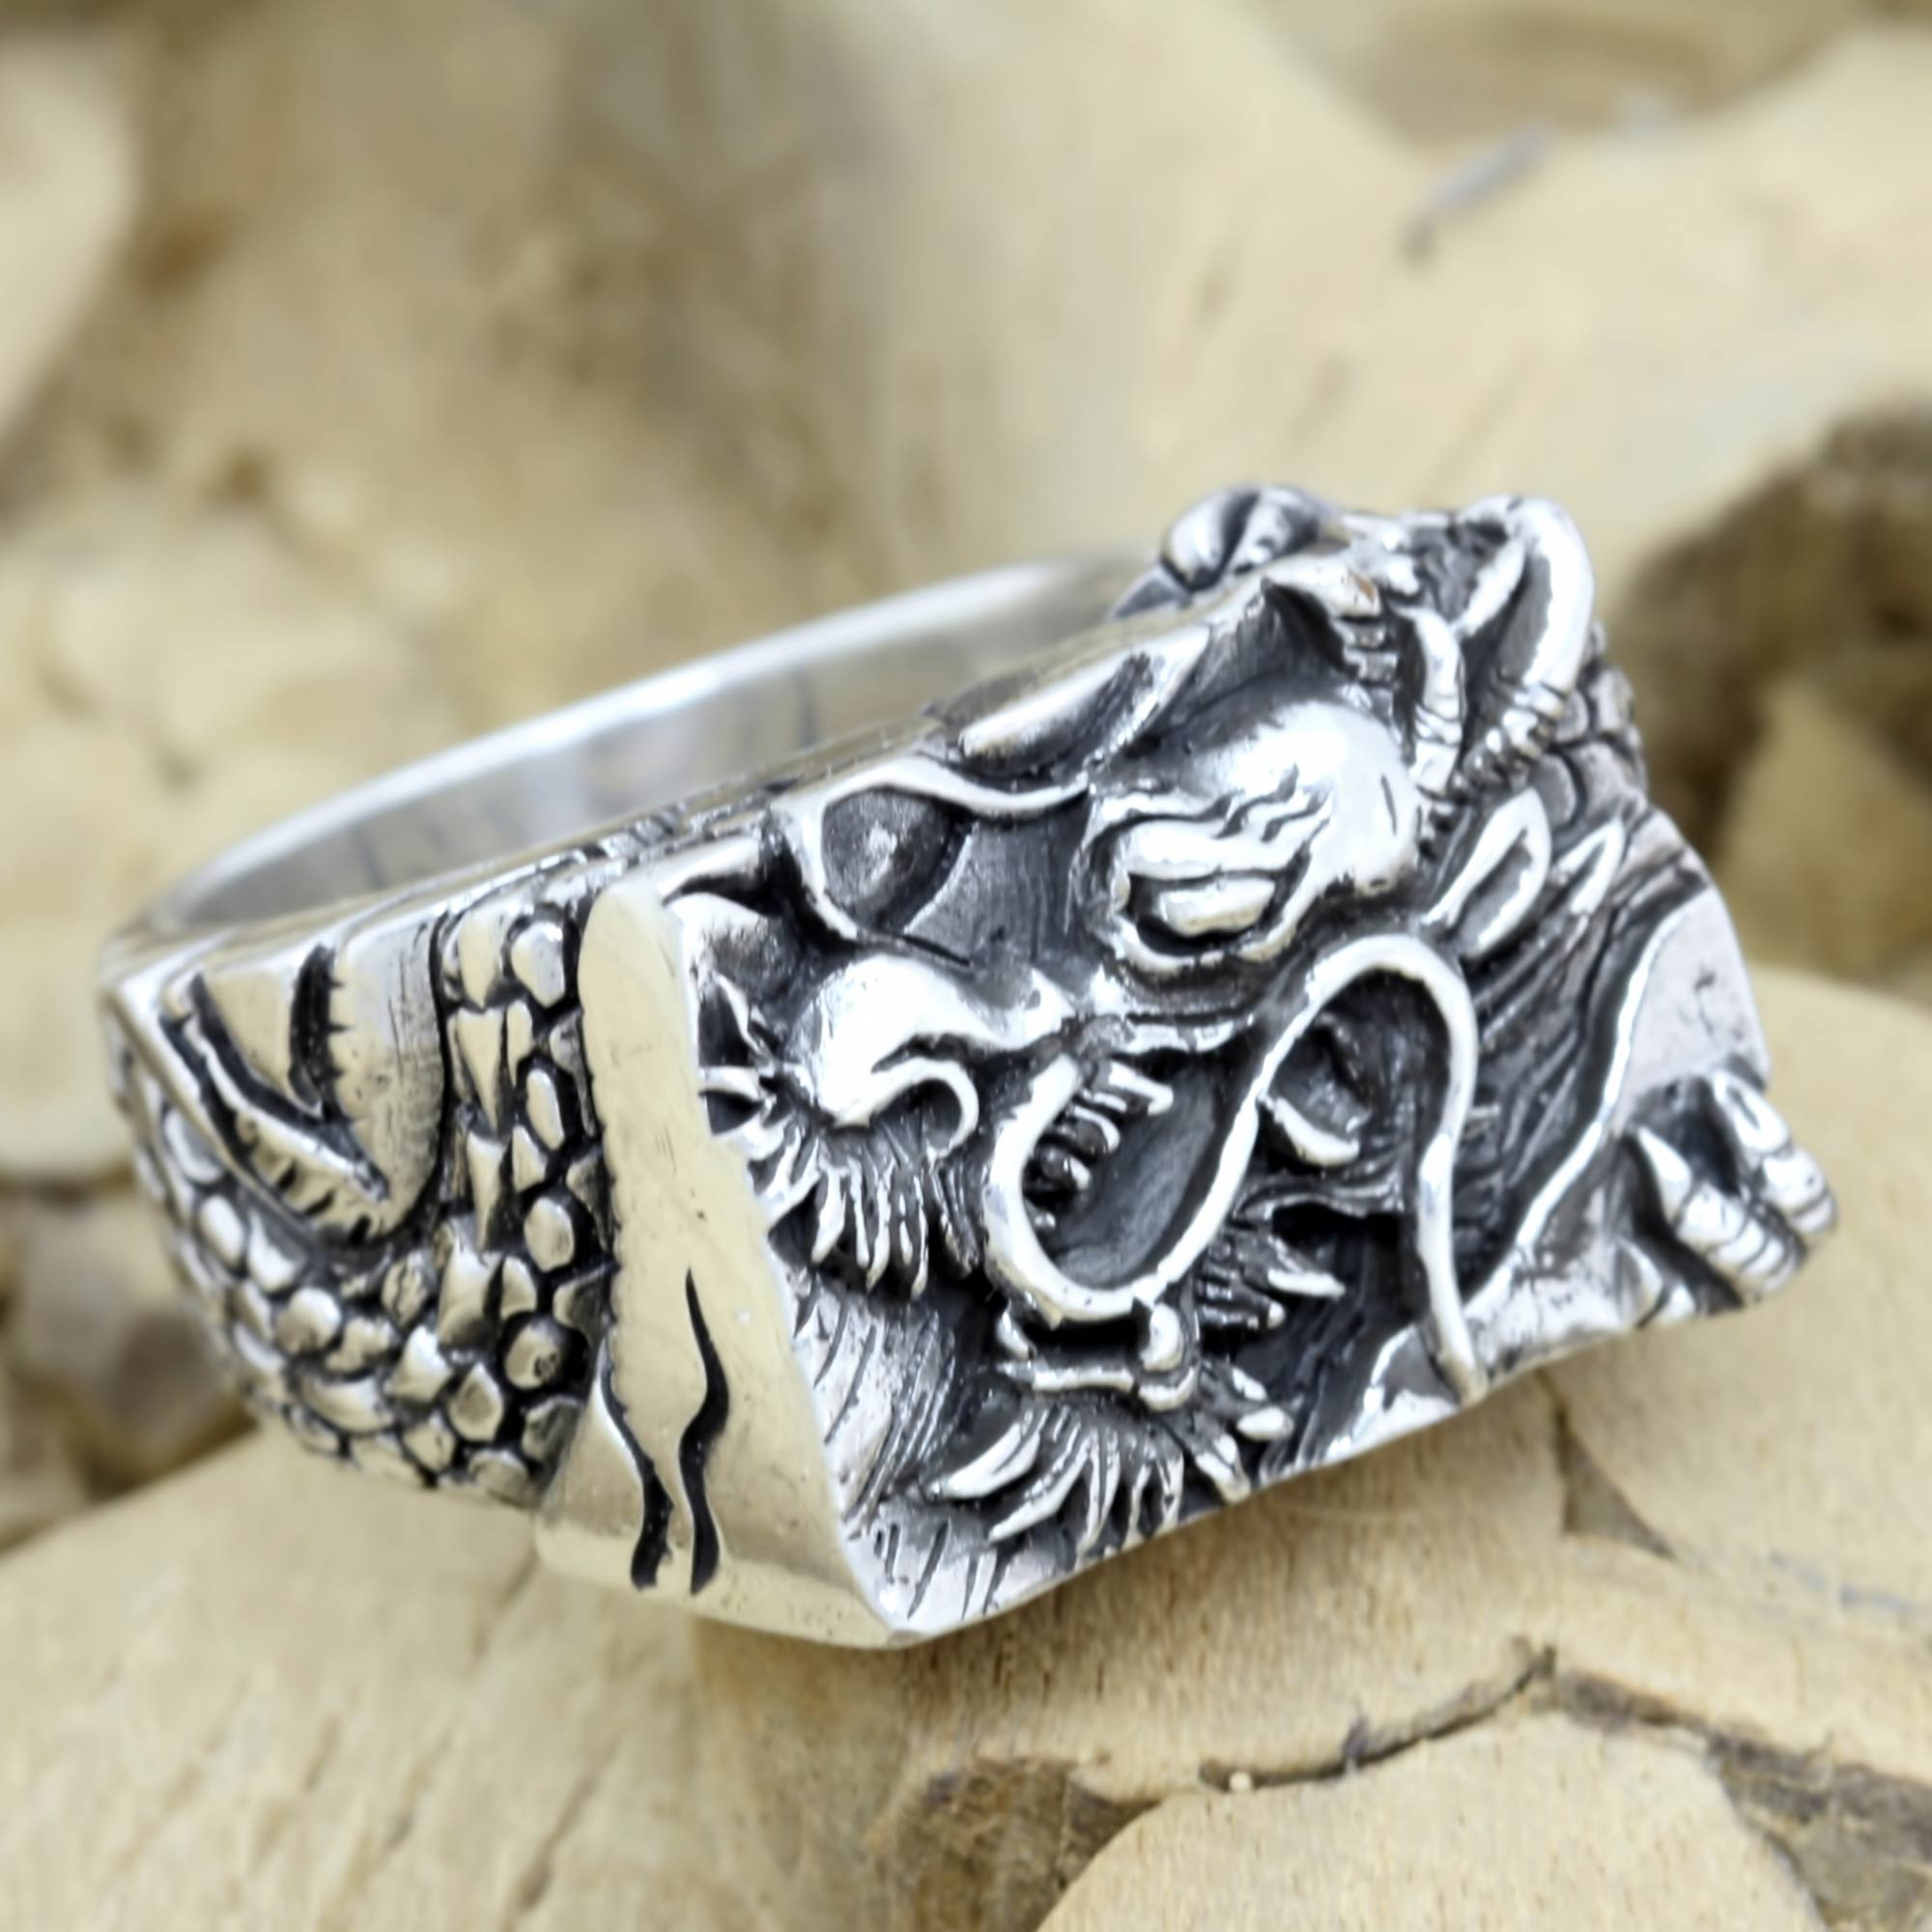 by rustic artsy ring wedding men is s cool or new wrapped band unique idea mens this super made rings wire masculine of